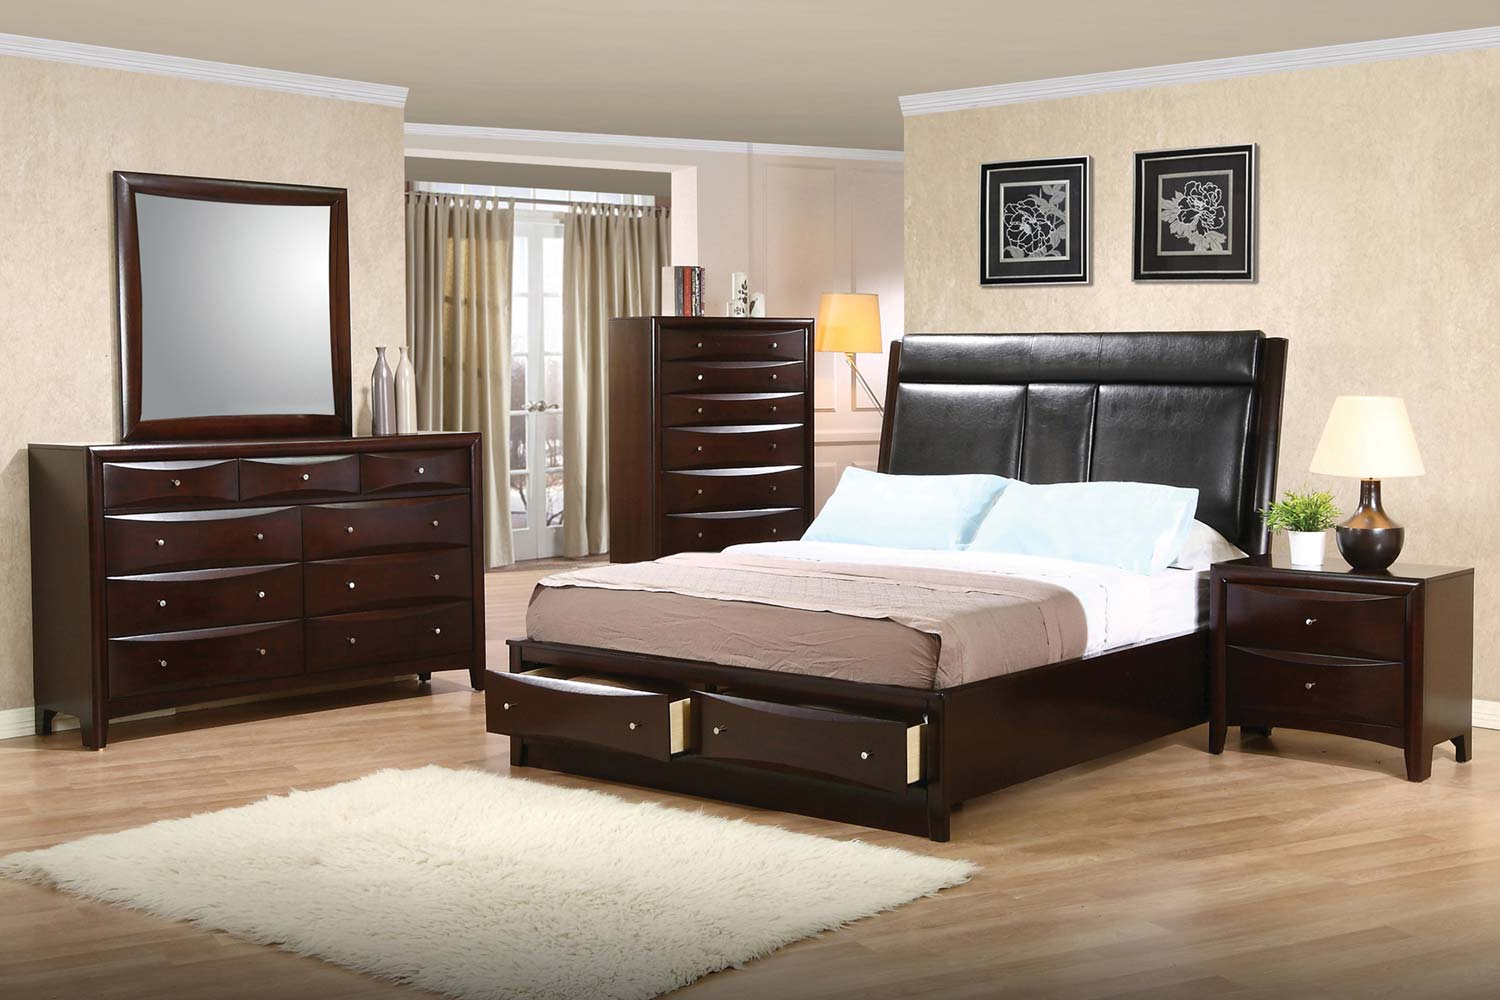 Coaster Phoenix Upholstered Storage Bedroom Set - Deep Cappuccino